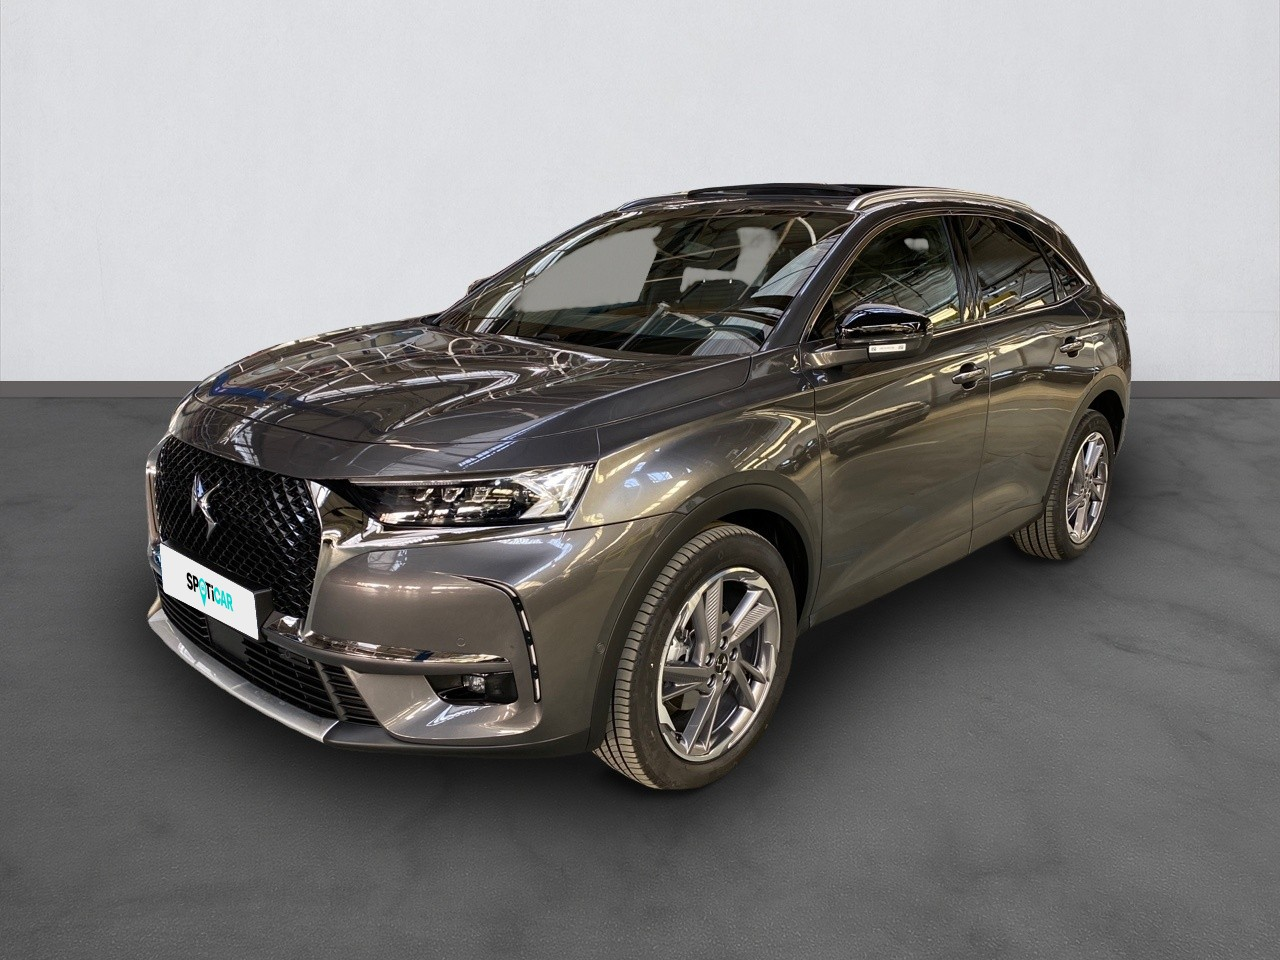 DS 7 CROSSBACK DS 7 CROSSBACK BLUEHDI 180 EAT8 GRAND CHIC